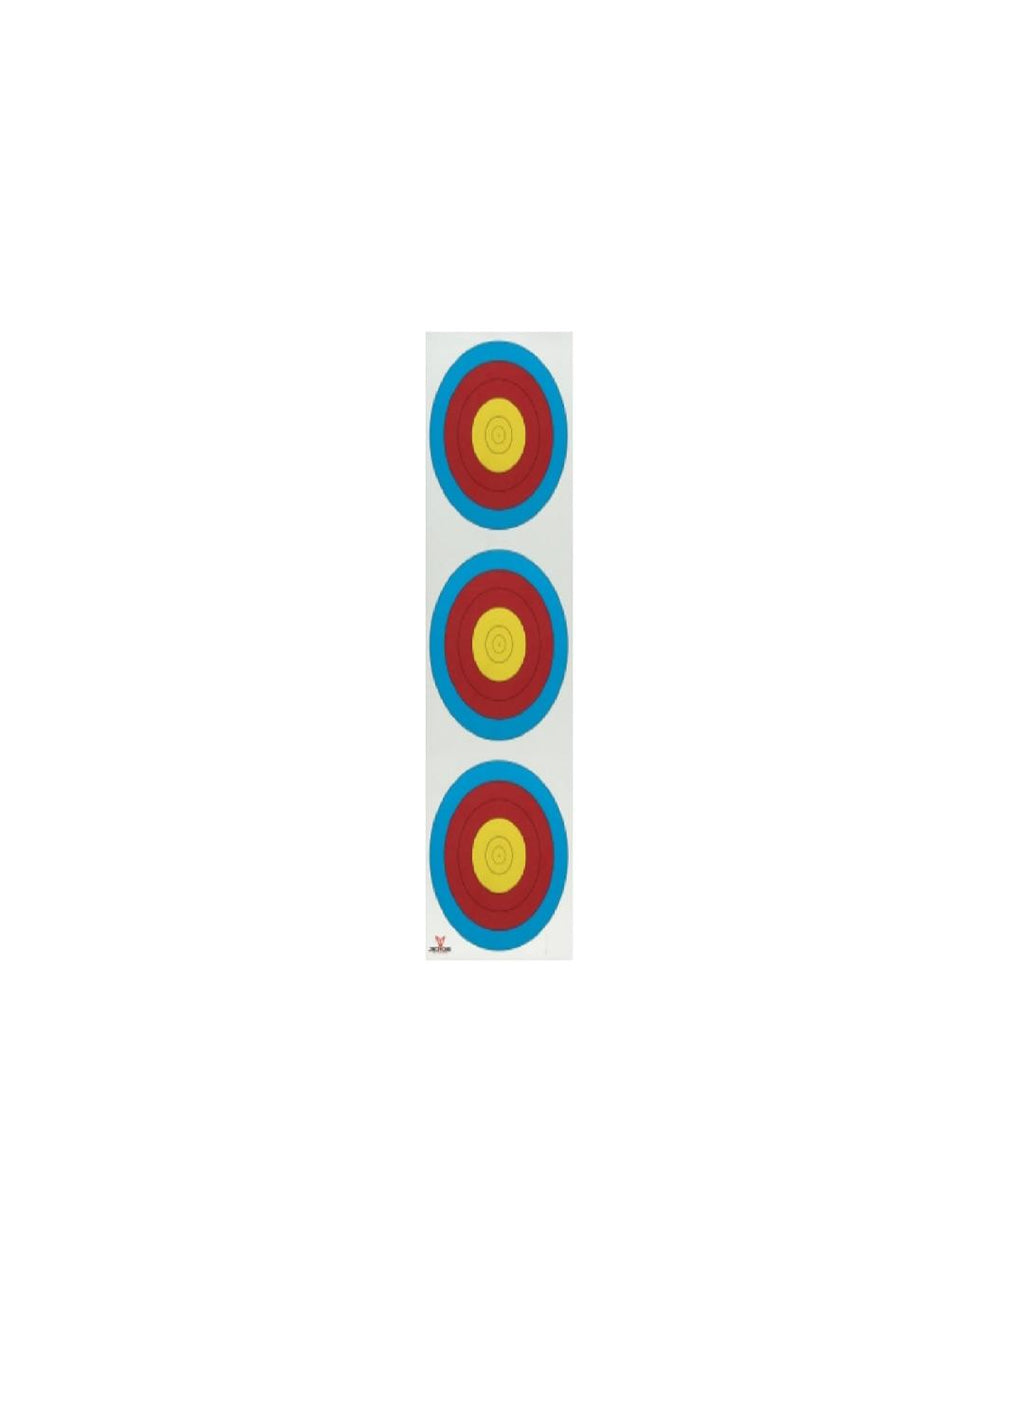 .30-06 Outdoors Vertical 3 Spot Paper Target 100ct